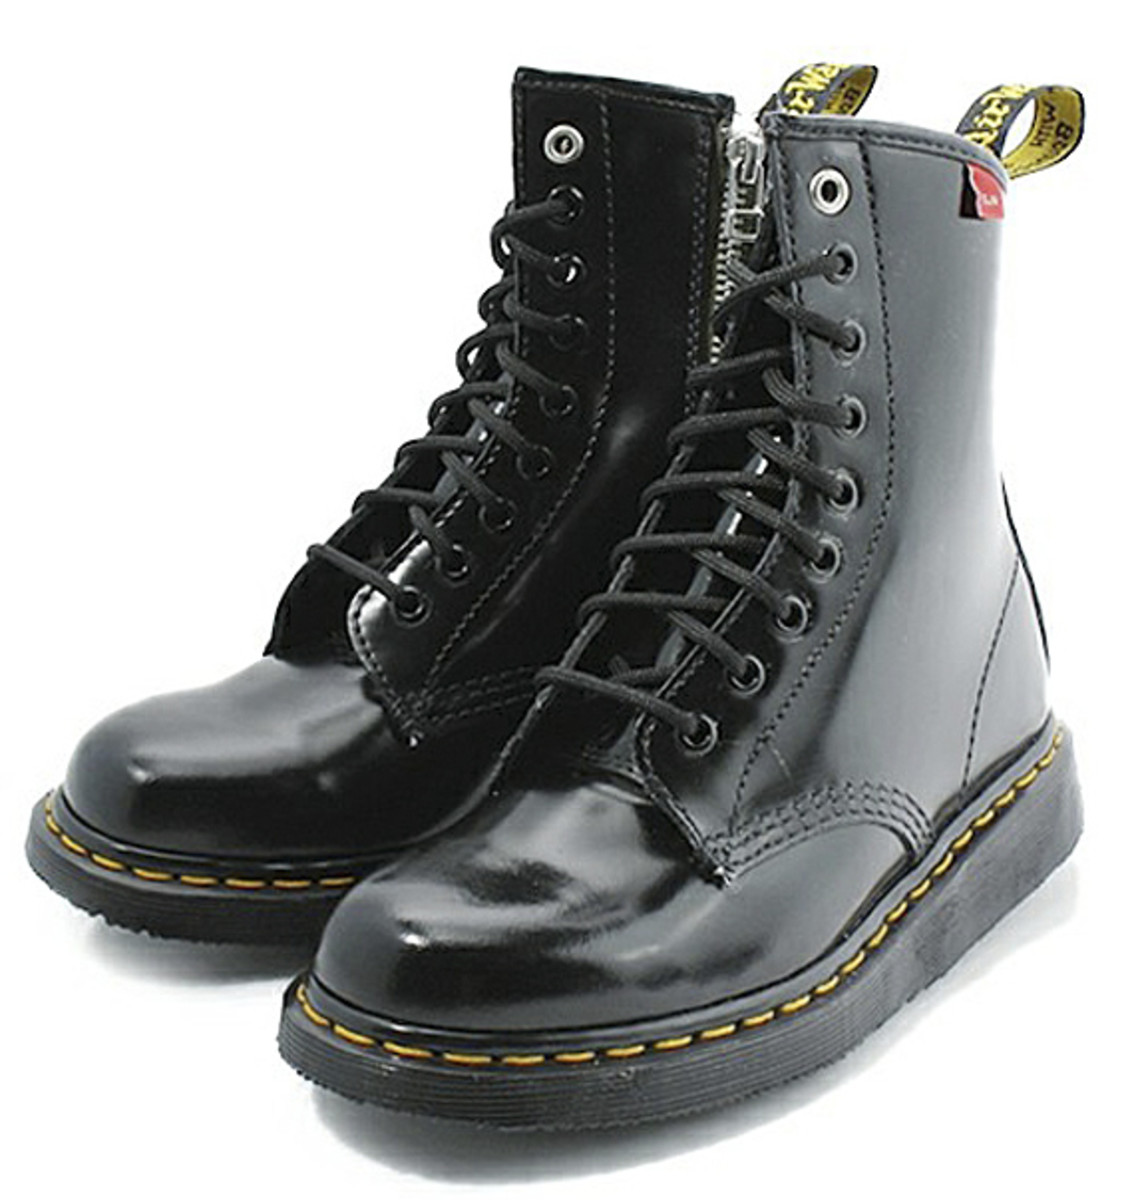 dr-martens-bedwin-heartbreaker-dr-know-boots-01